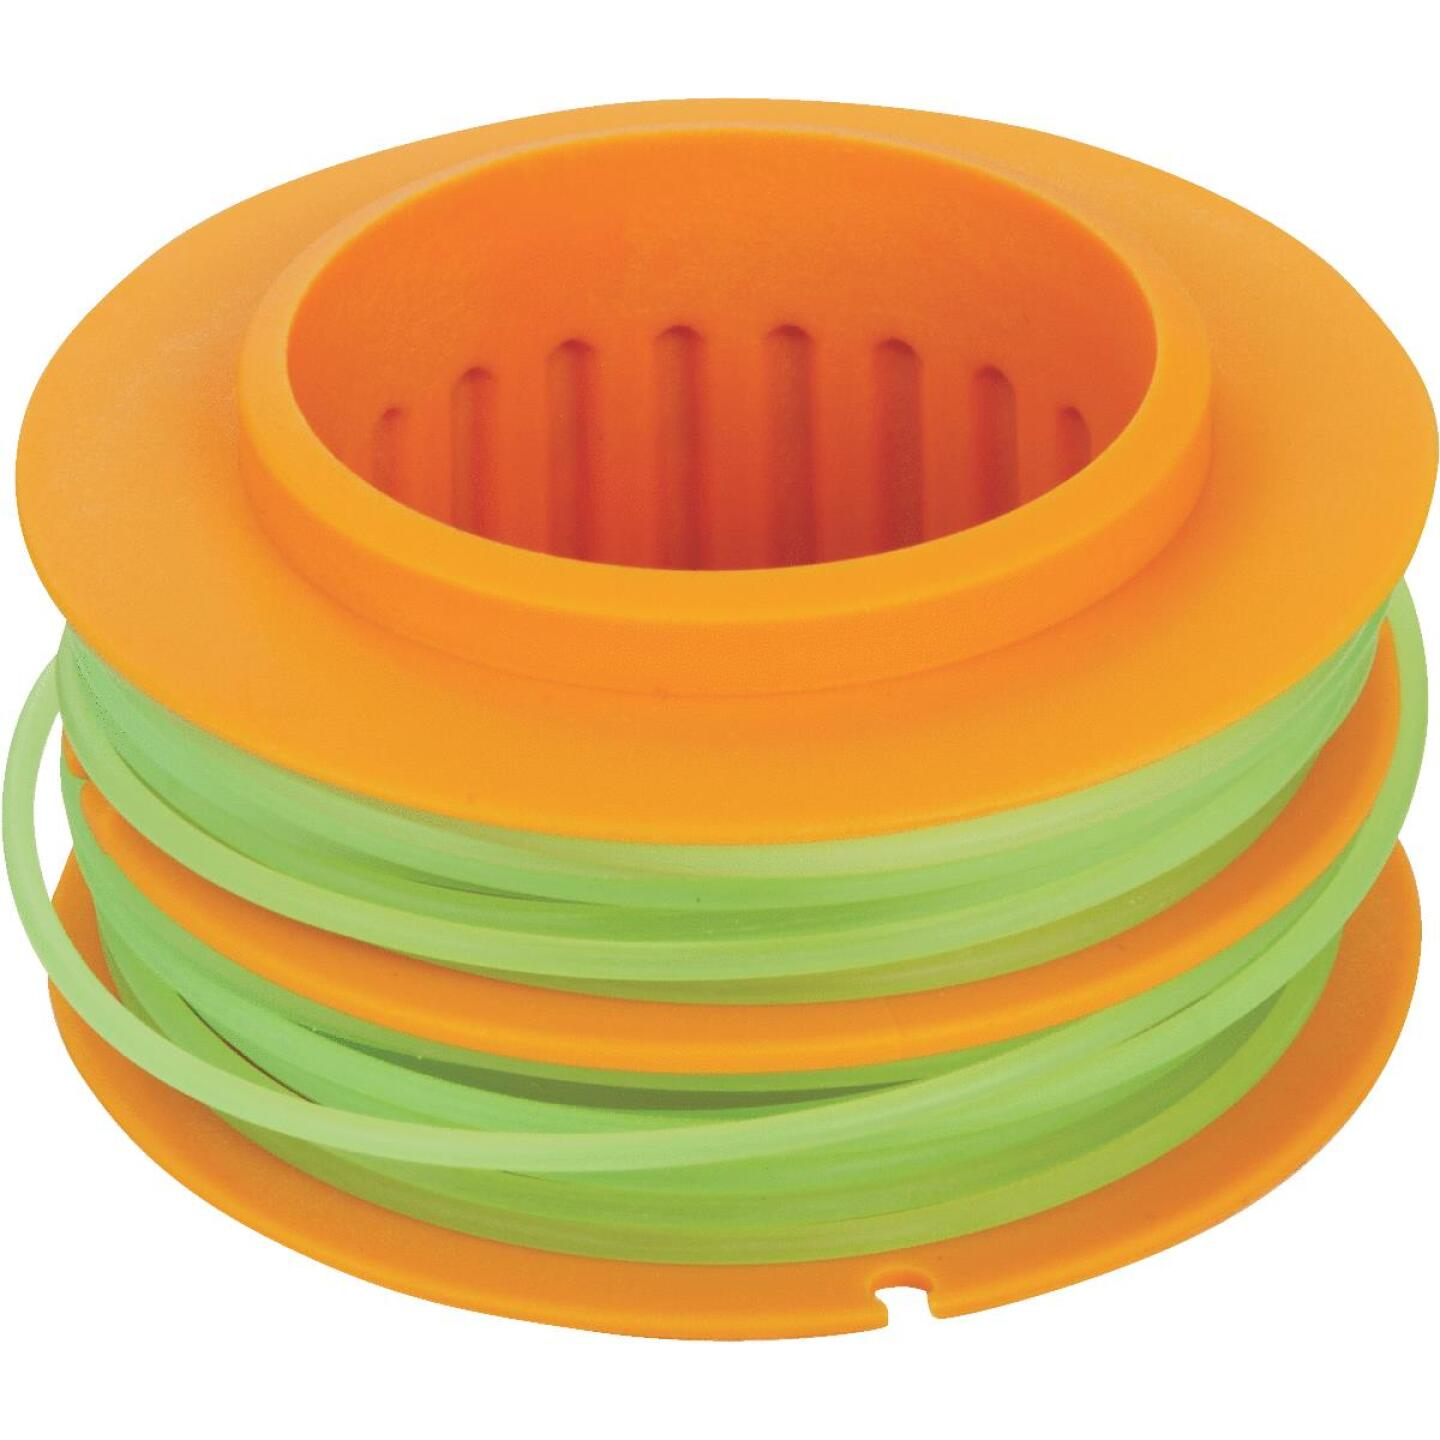 Poulan Pro Tap N Go 0.080 In. x 25 Ft. Dual Trimmer Line Spool Image 1